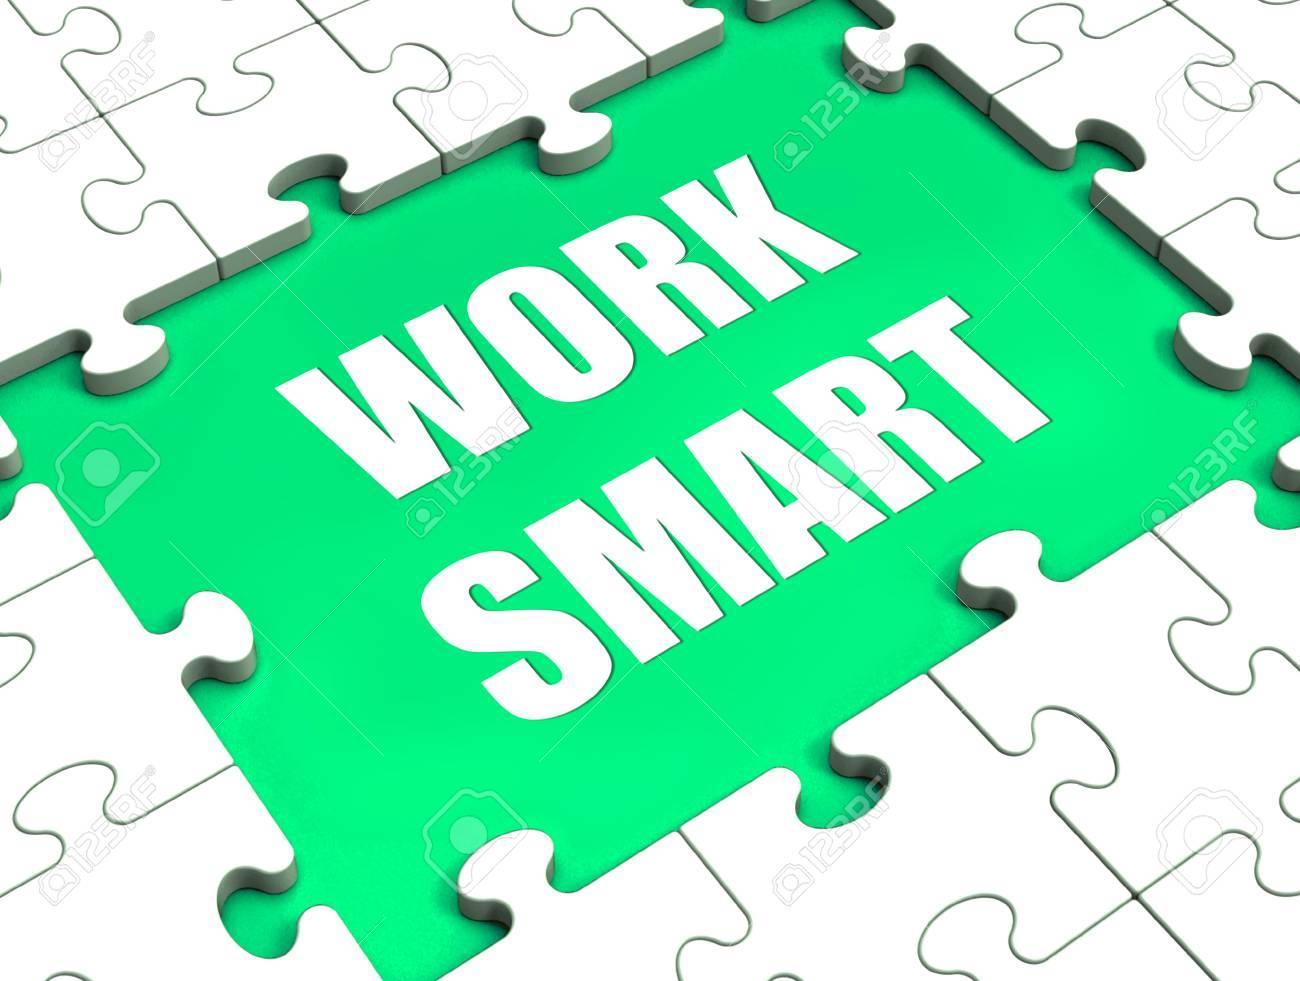 work smart puzzle showing intelligent clever worker stock photo stock photo work smart puzzle showing intelligent clever worker